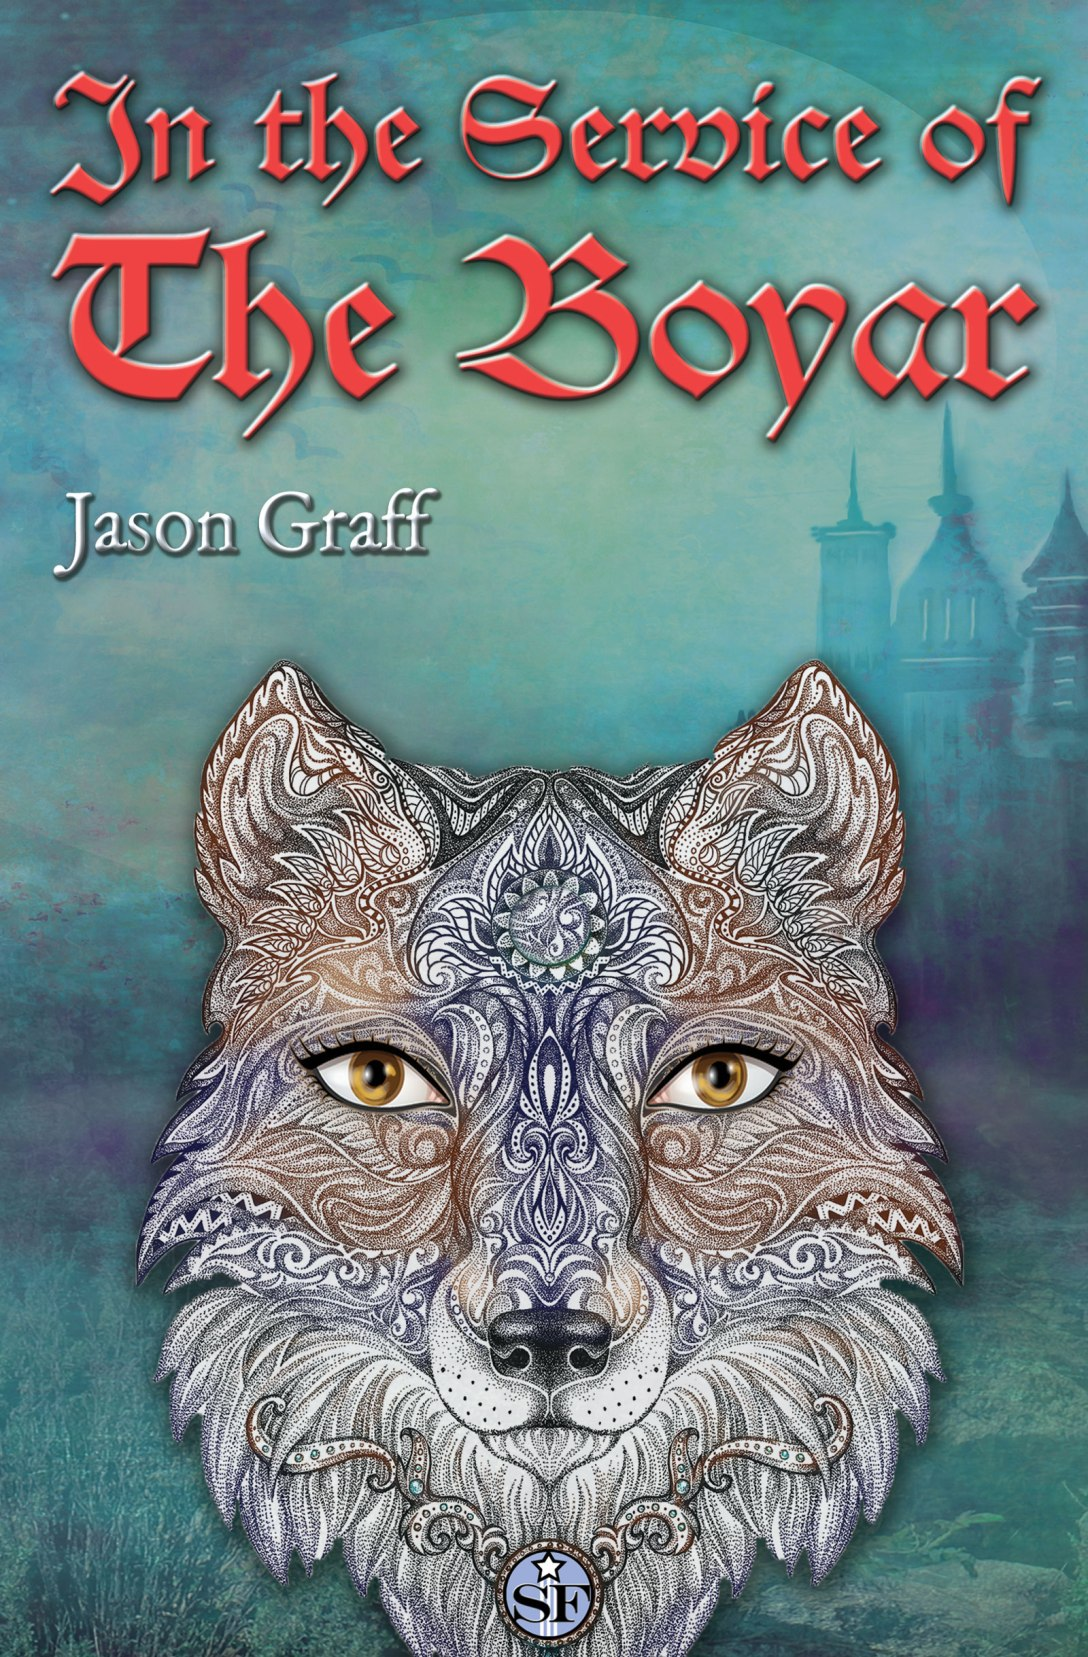 In the Service of The Boyar by Jason Graff